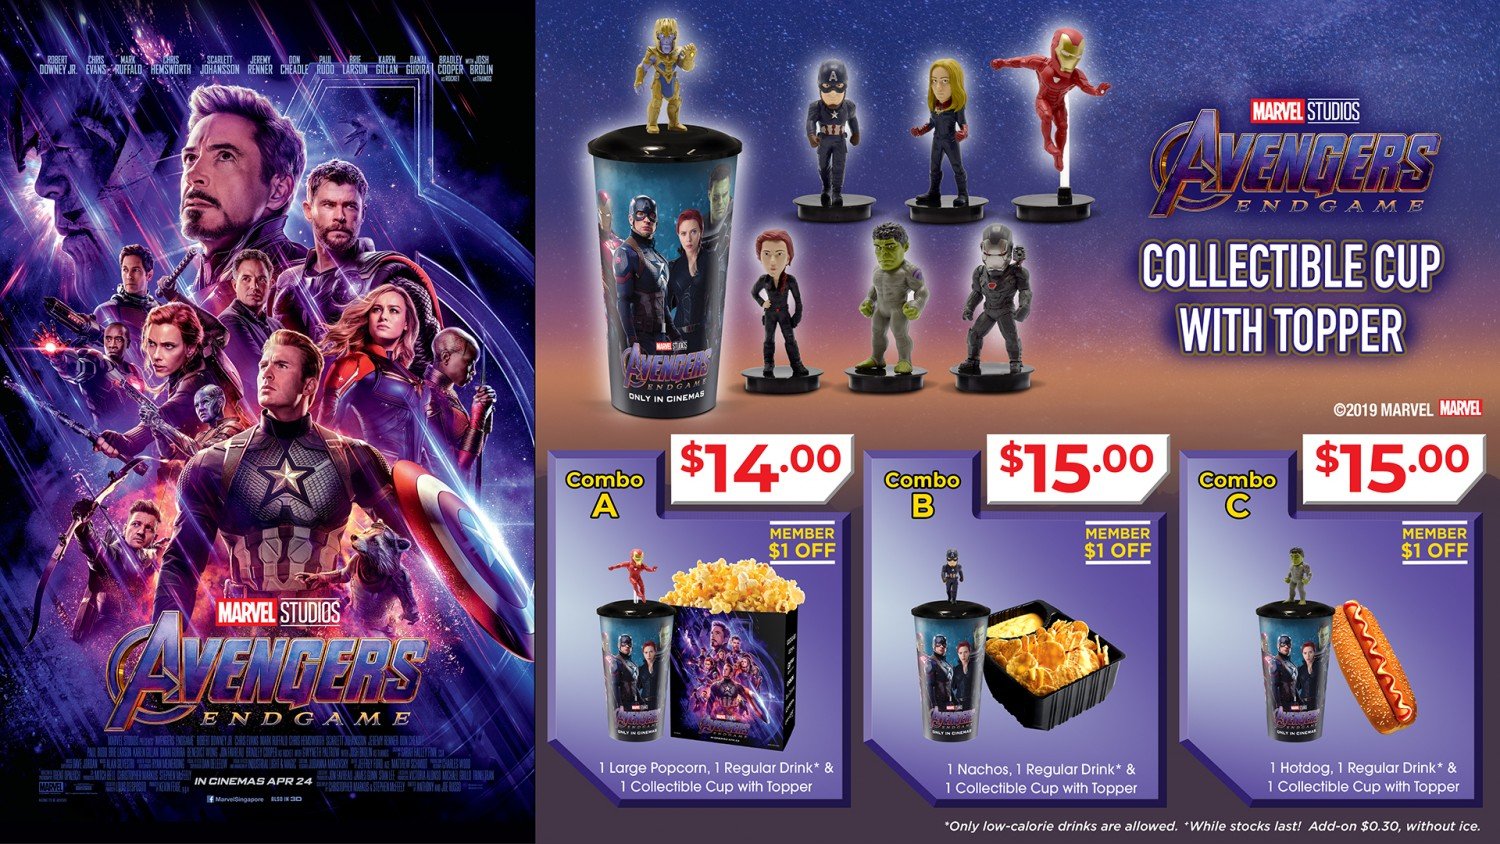 All The Avengers Endgame Singapore Cinema Goodies In One Place